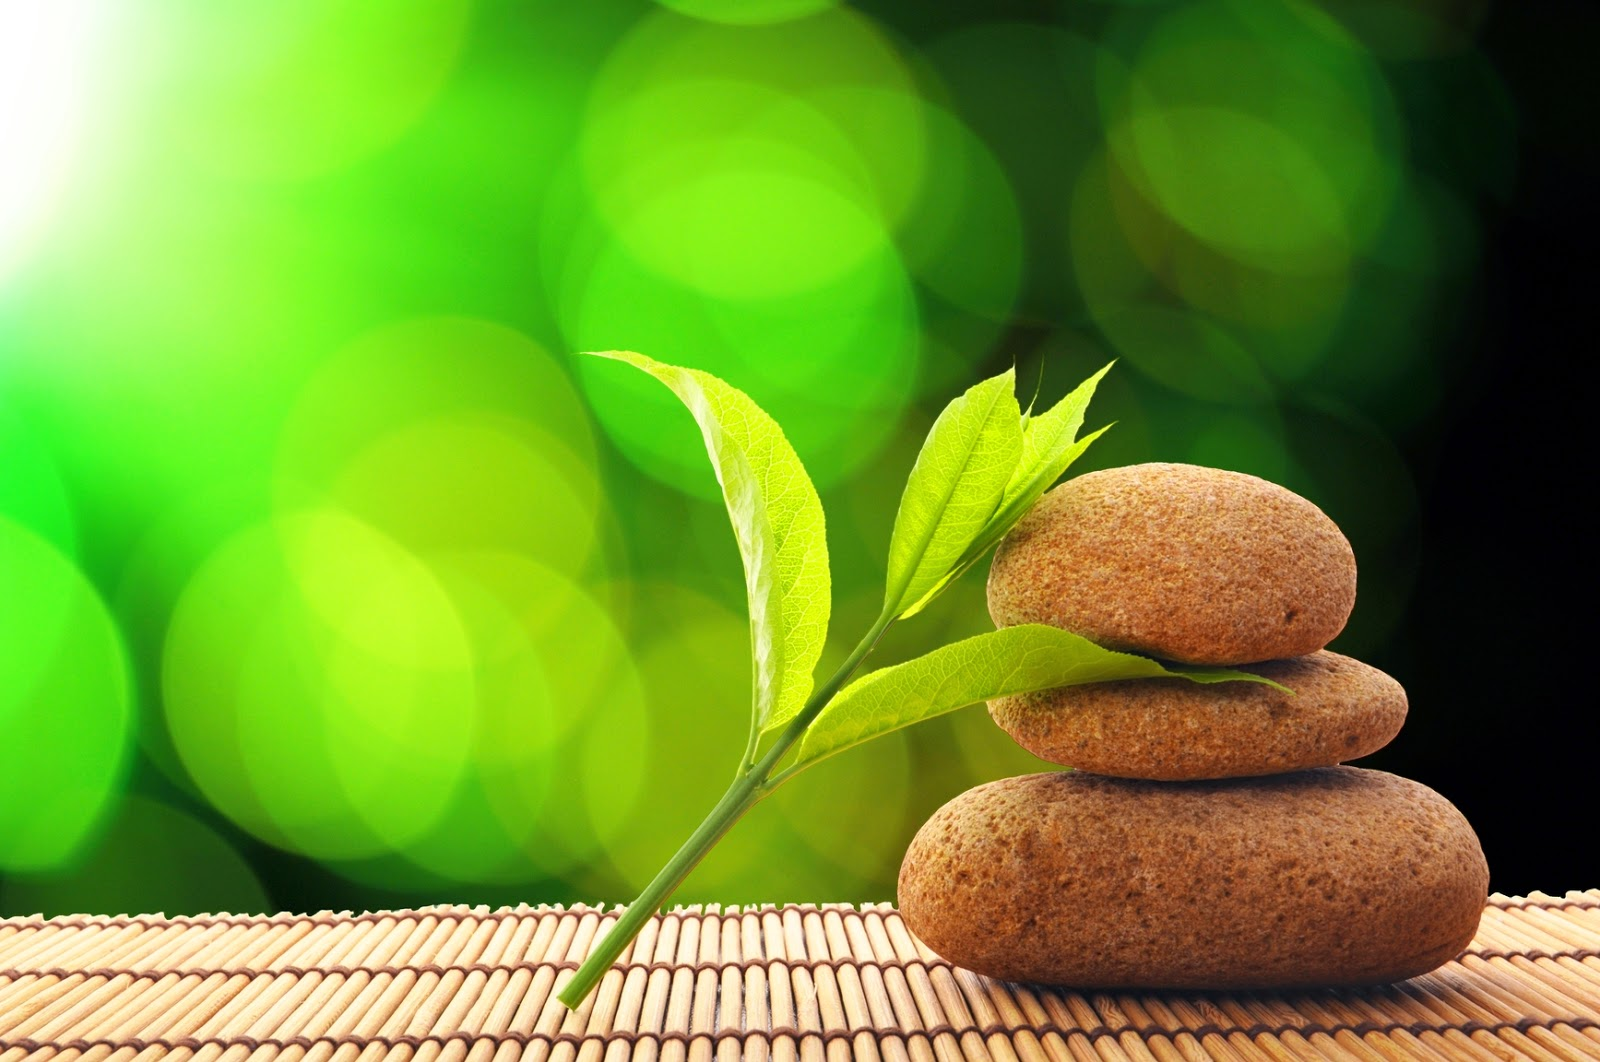 Zen Relaxation Backgrounds: Peaceful Zen